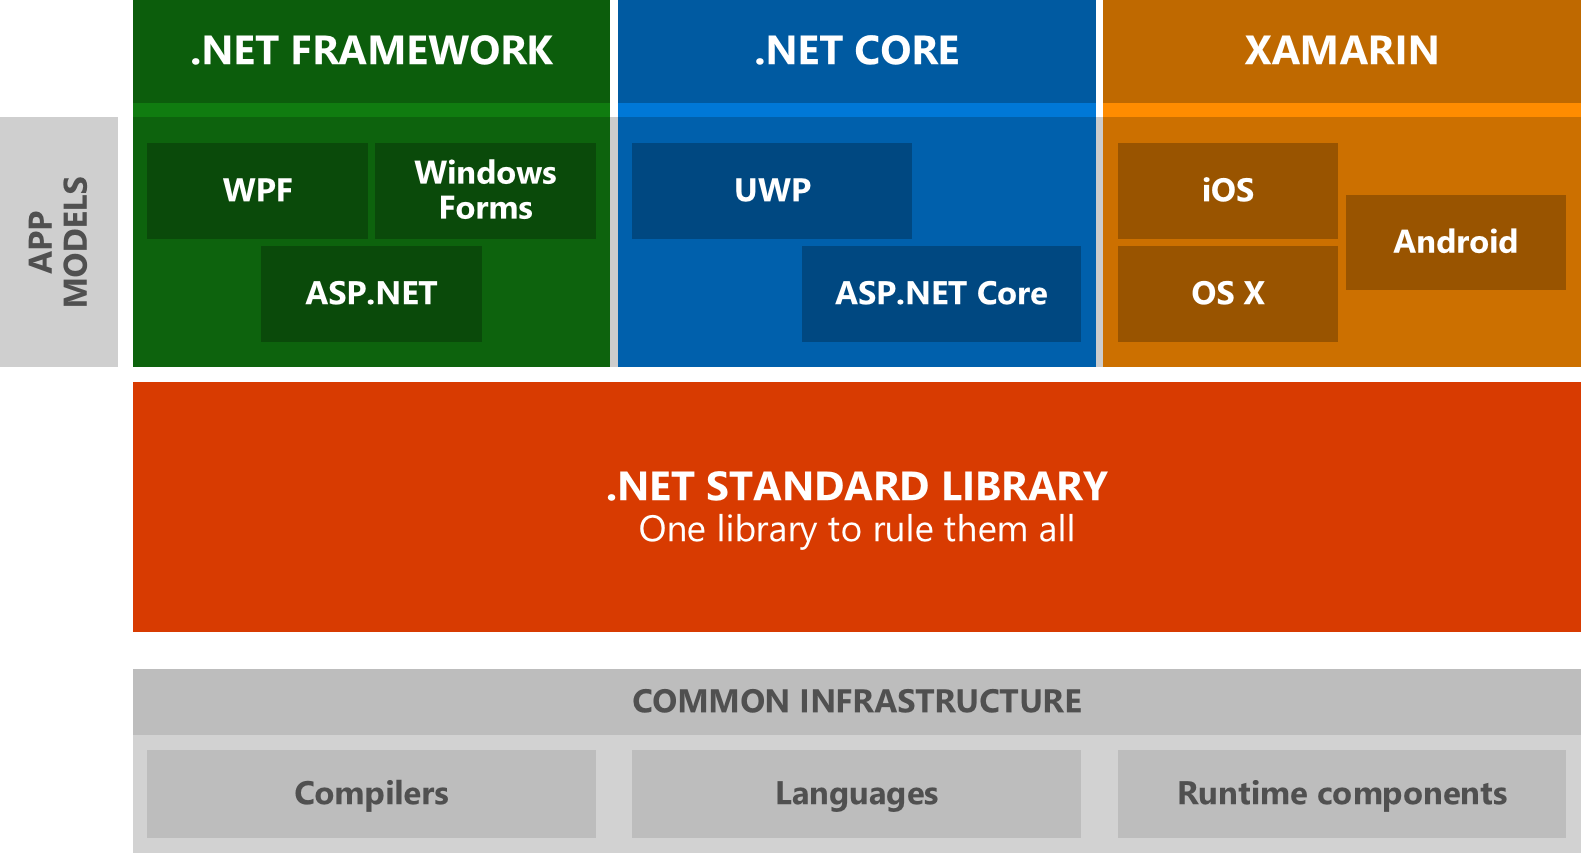 .net framework vs .net core